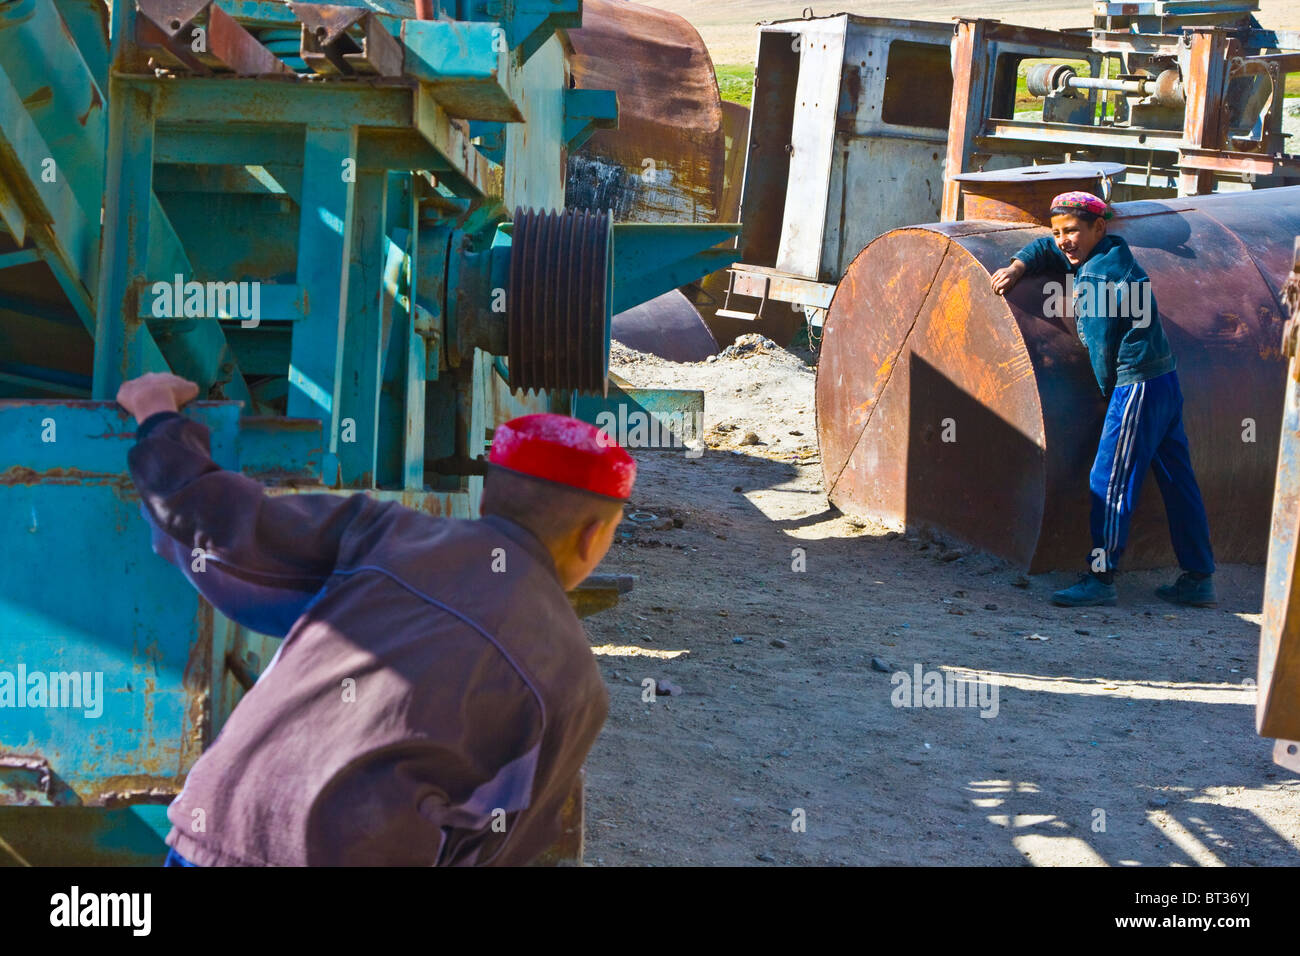 Boys playing hide n seek around rusted equipment in Bulunkul, Pamirs, Tajikistan - Stock Image